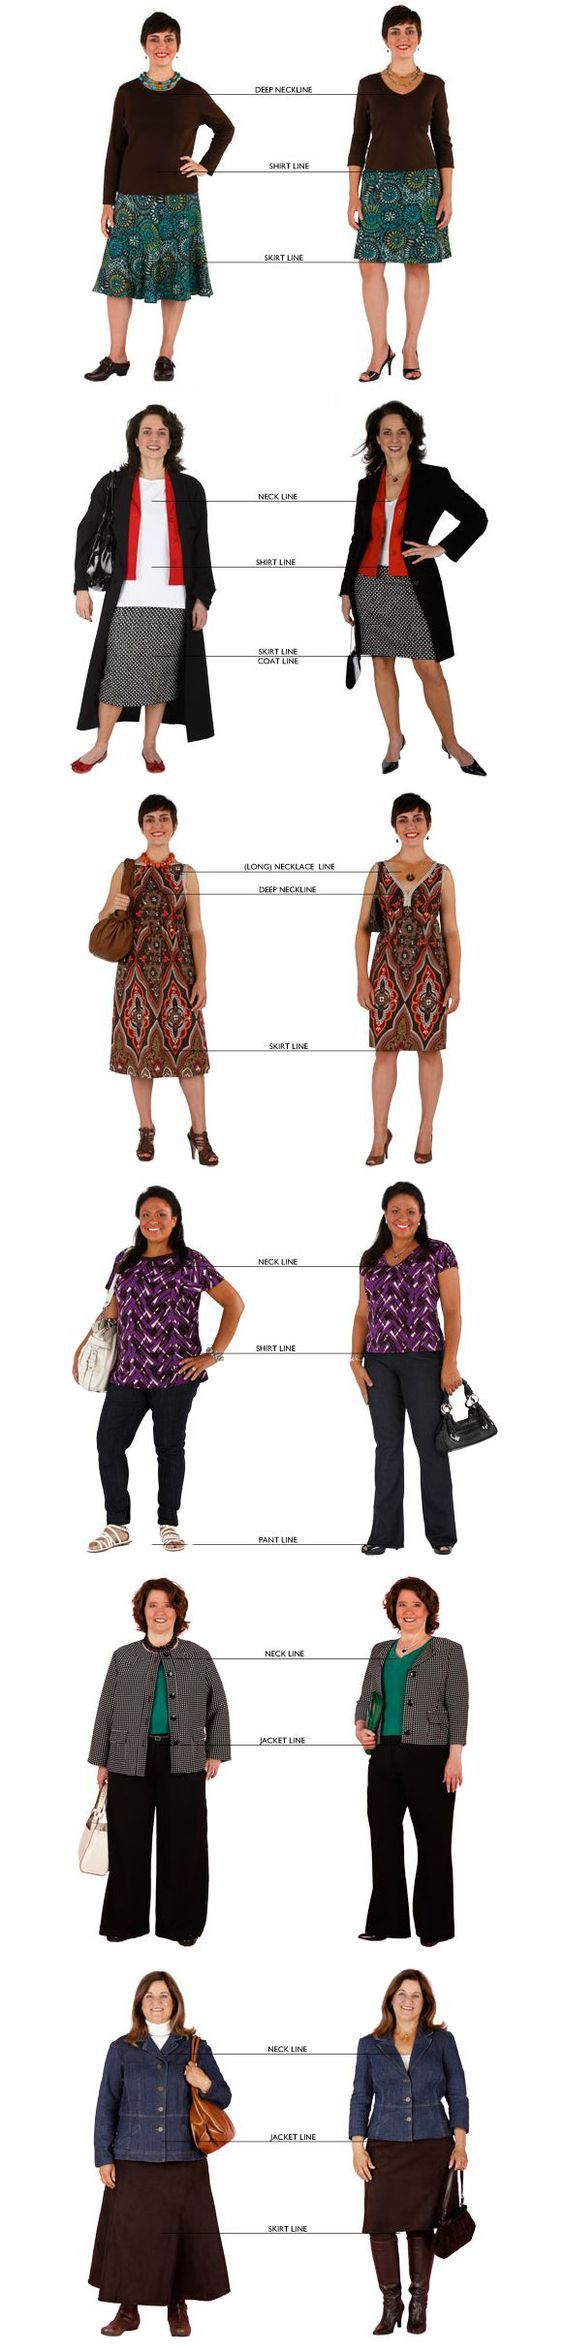 Dress to flatter your shape using ideal fit and proportions